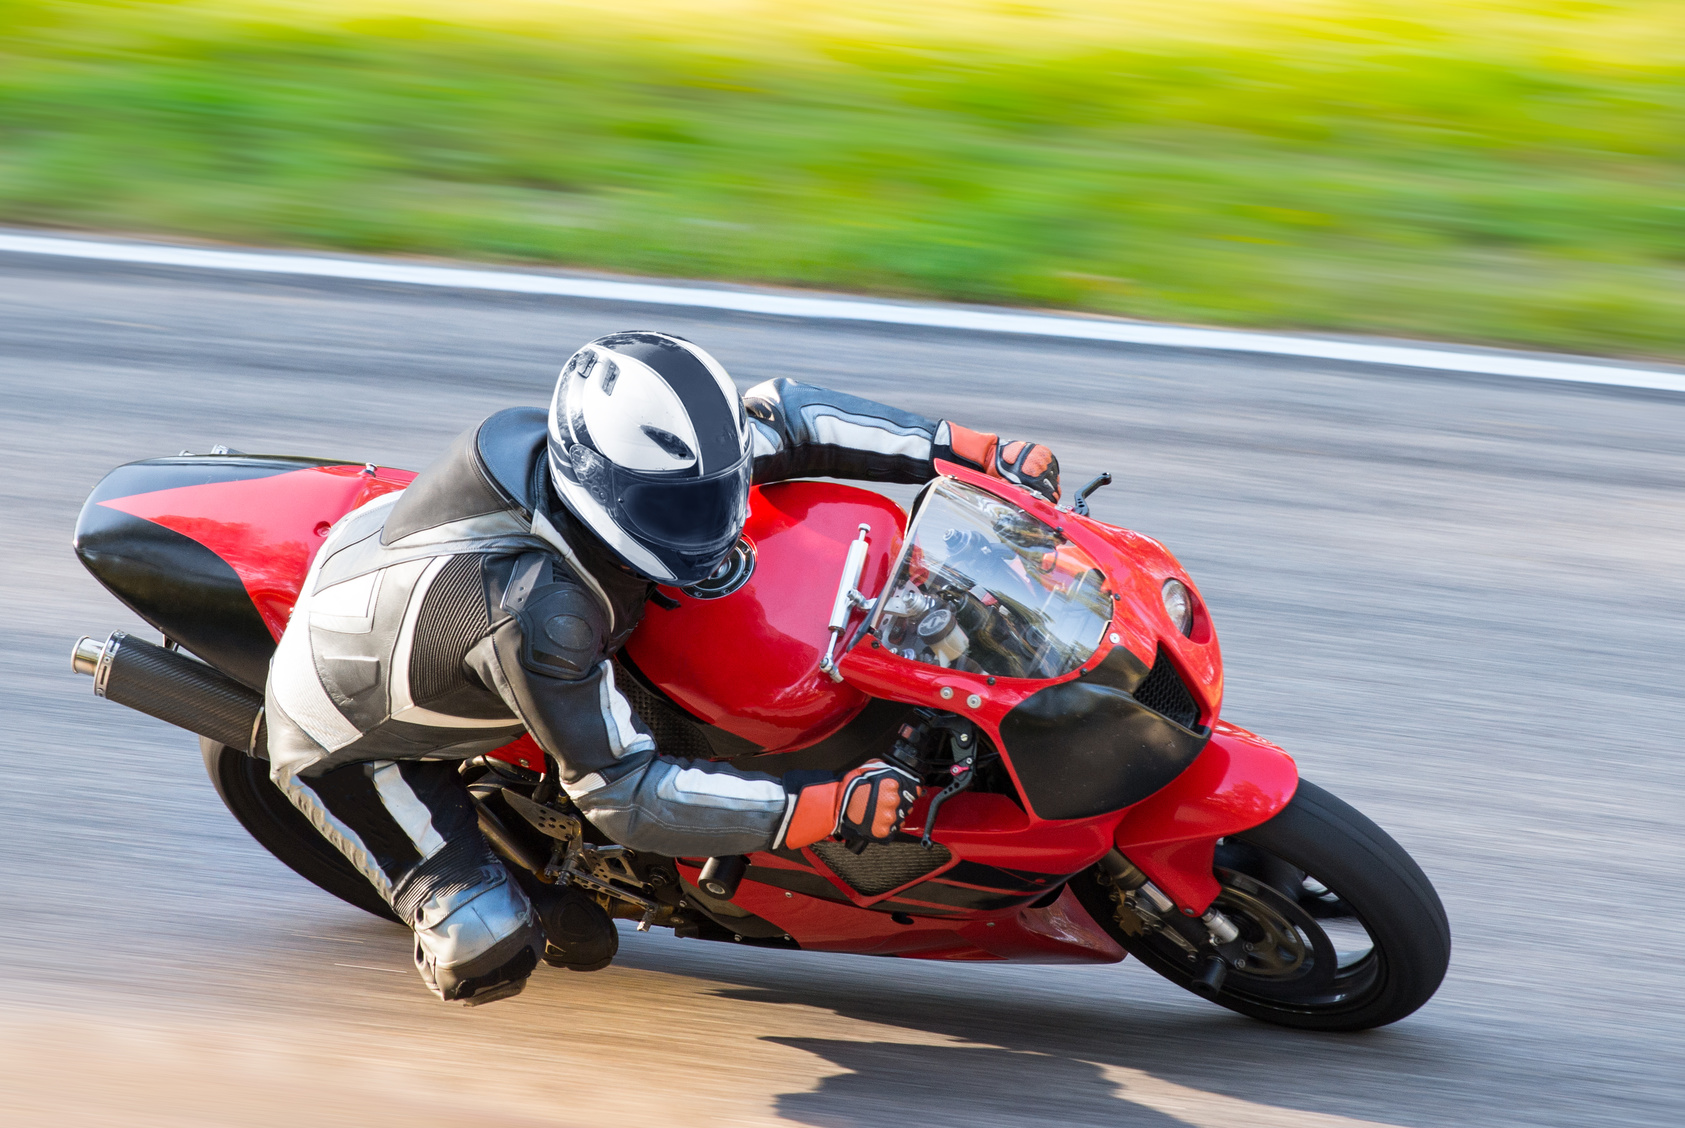 All about motorcycle insurance